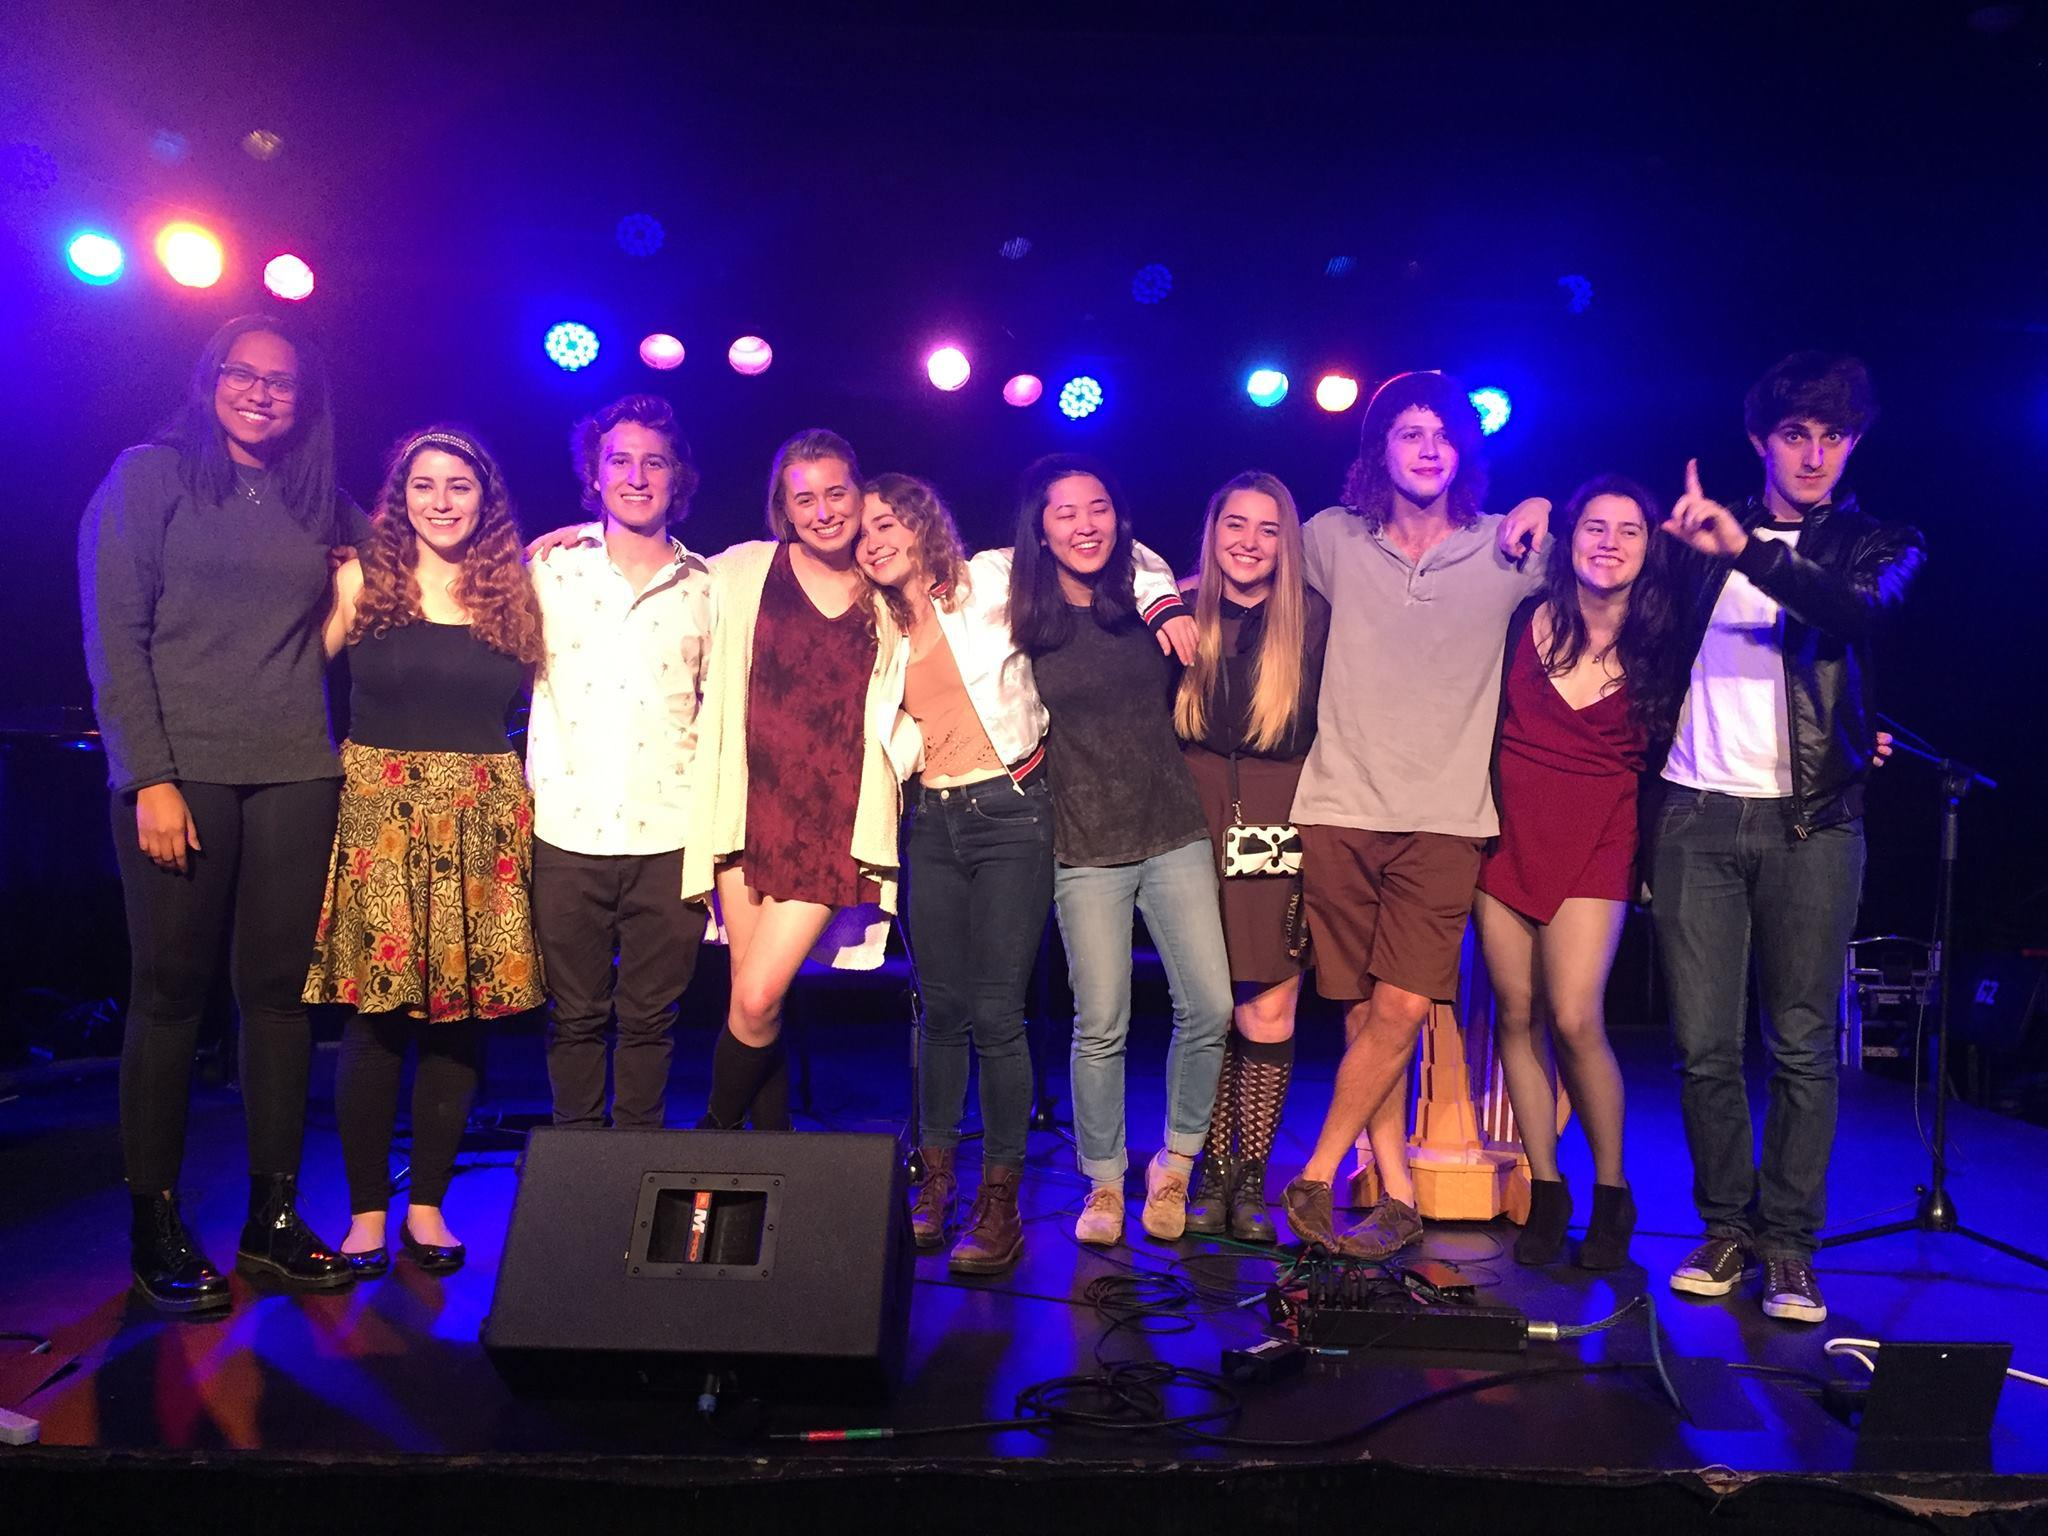 Picture published with permission of Jensen McRae '15. McRae and her USC Thornton School of Music Peers perform at the Freshmen Pop Songwriter Showcase held on Jan. 29.